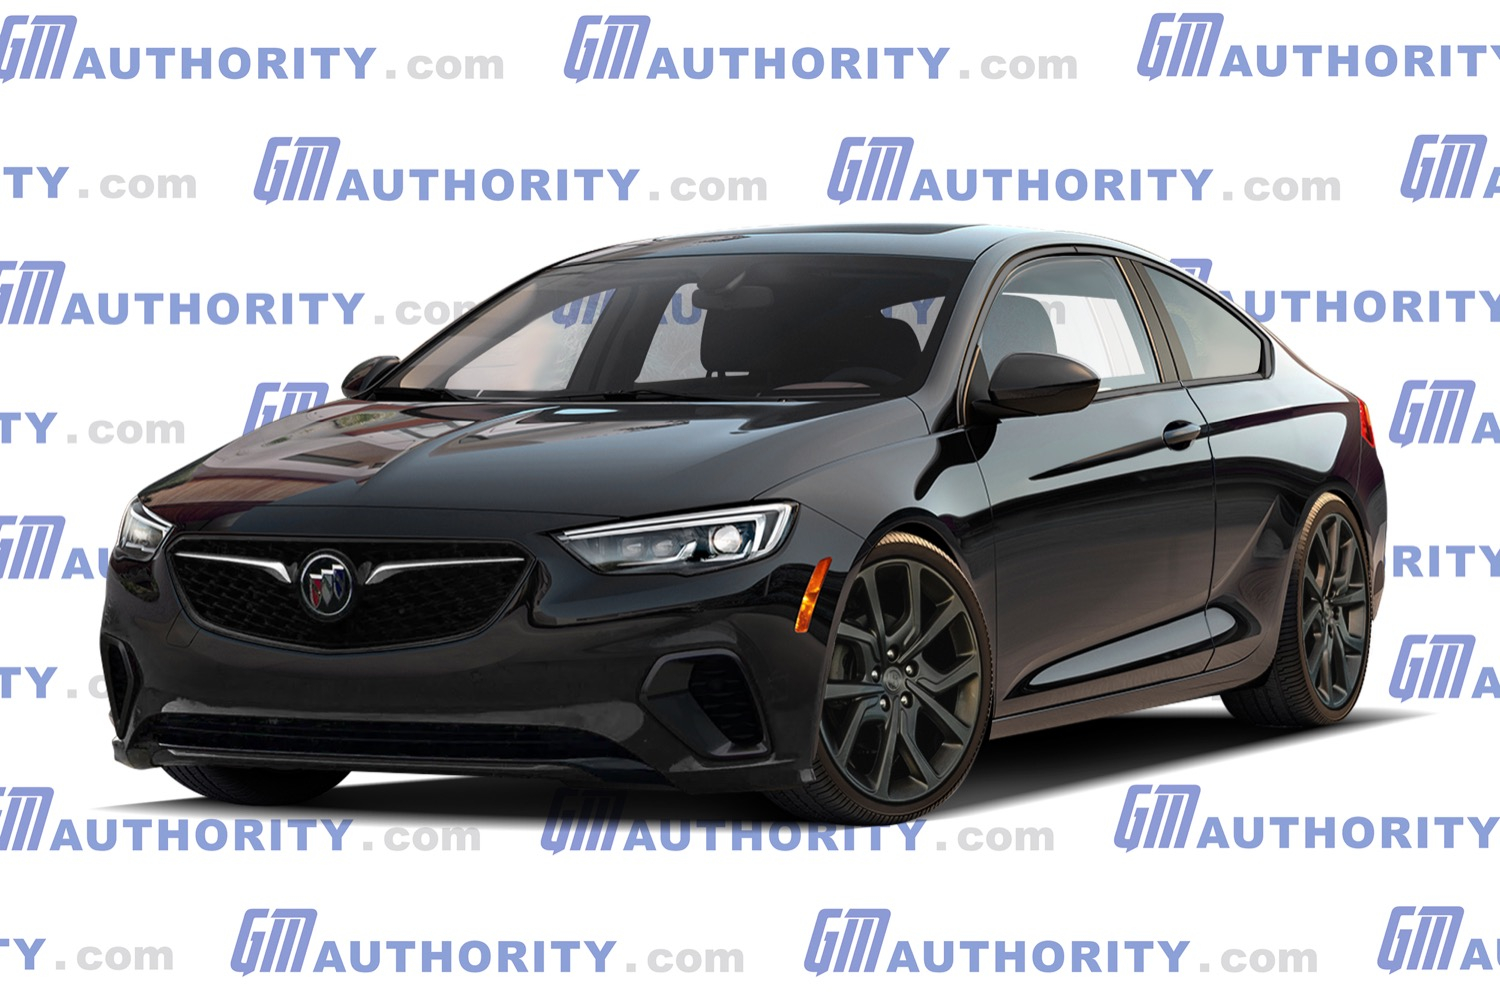 Modern Buick Regal Gnx Rendered | Gm Authority New 2022 Buick Regal Pictures, Performance, Review